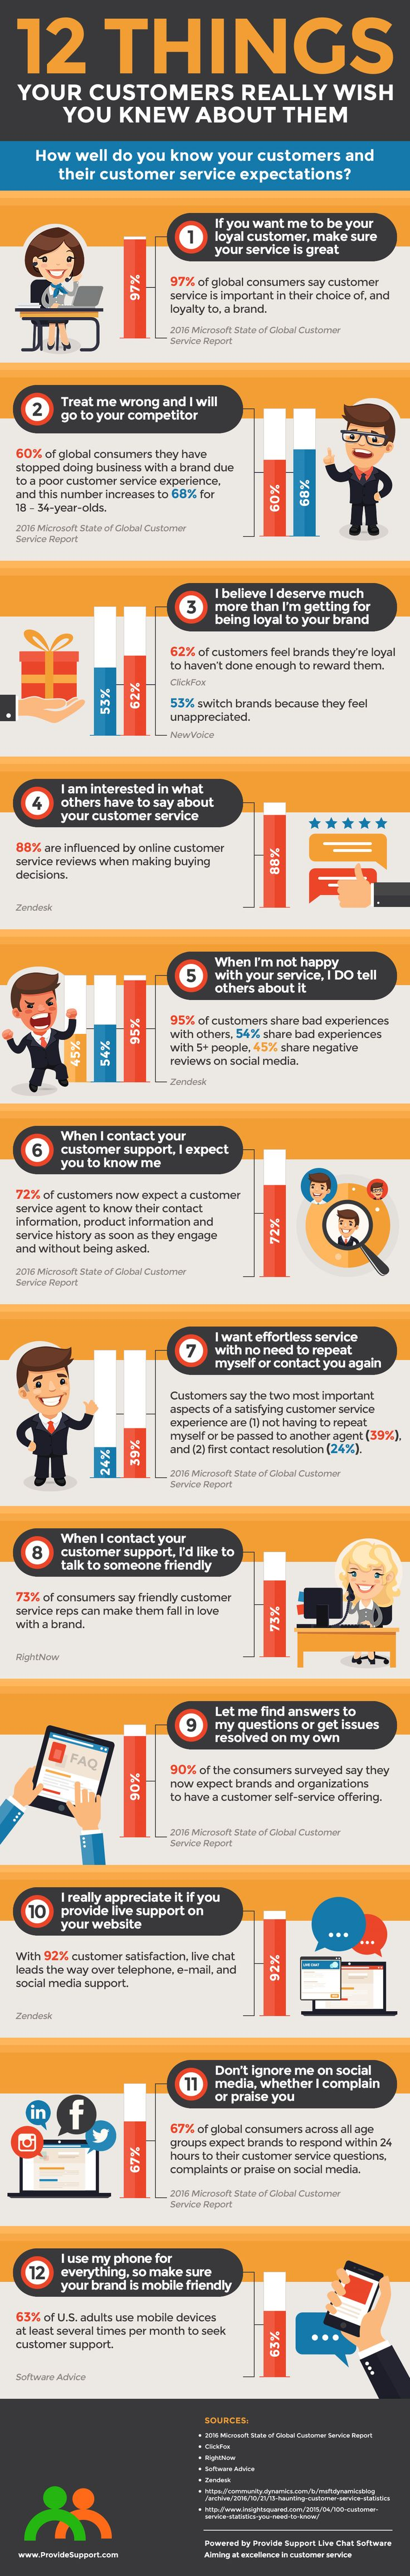 customer service skills list resume%0A This infographic highlights    things that you need to know about your  customers to make sure you meet their customer service expectations